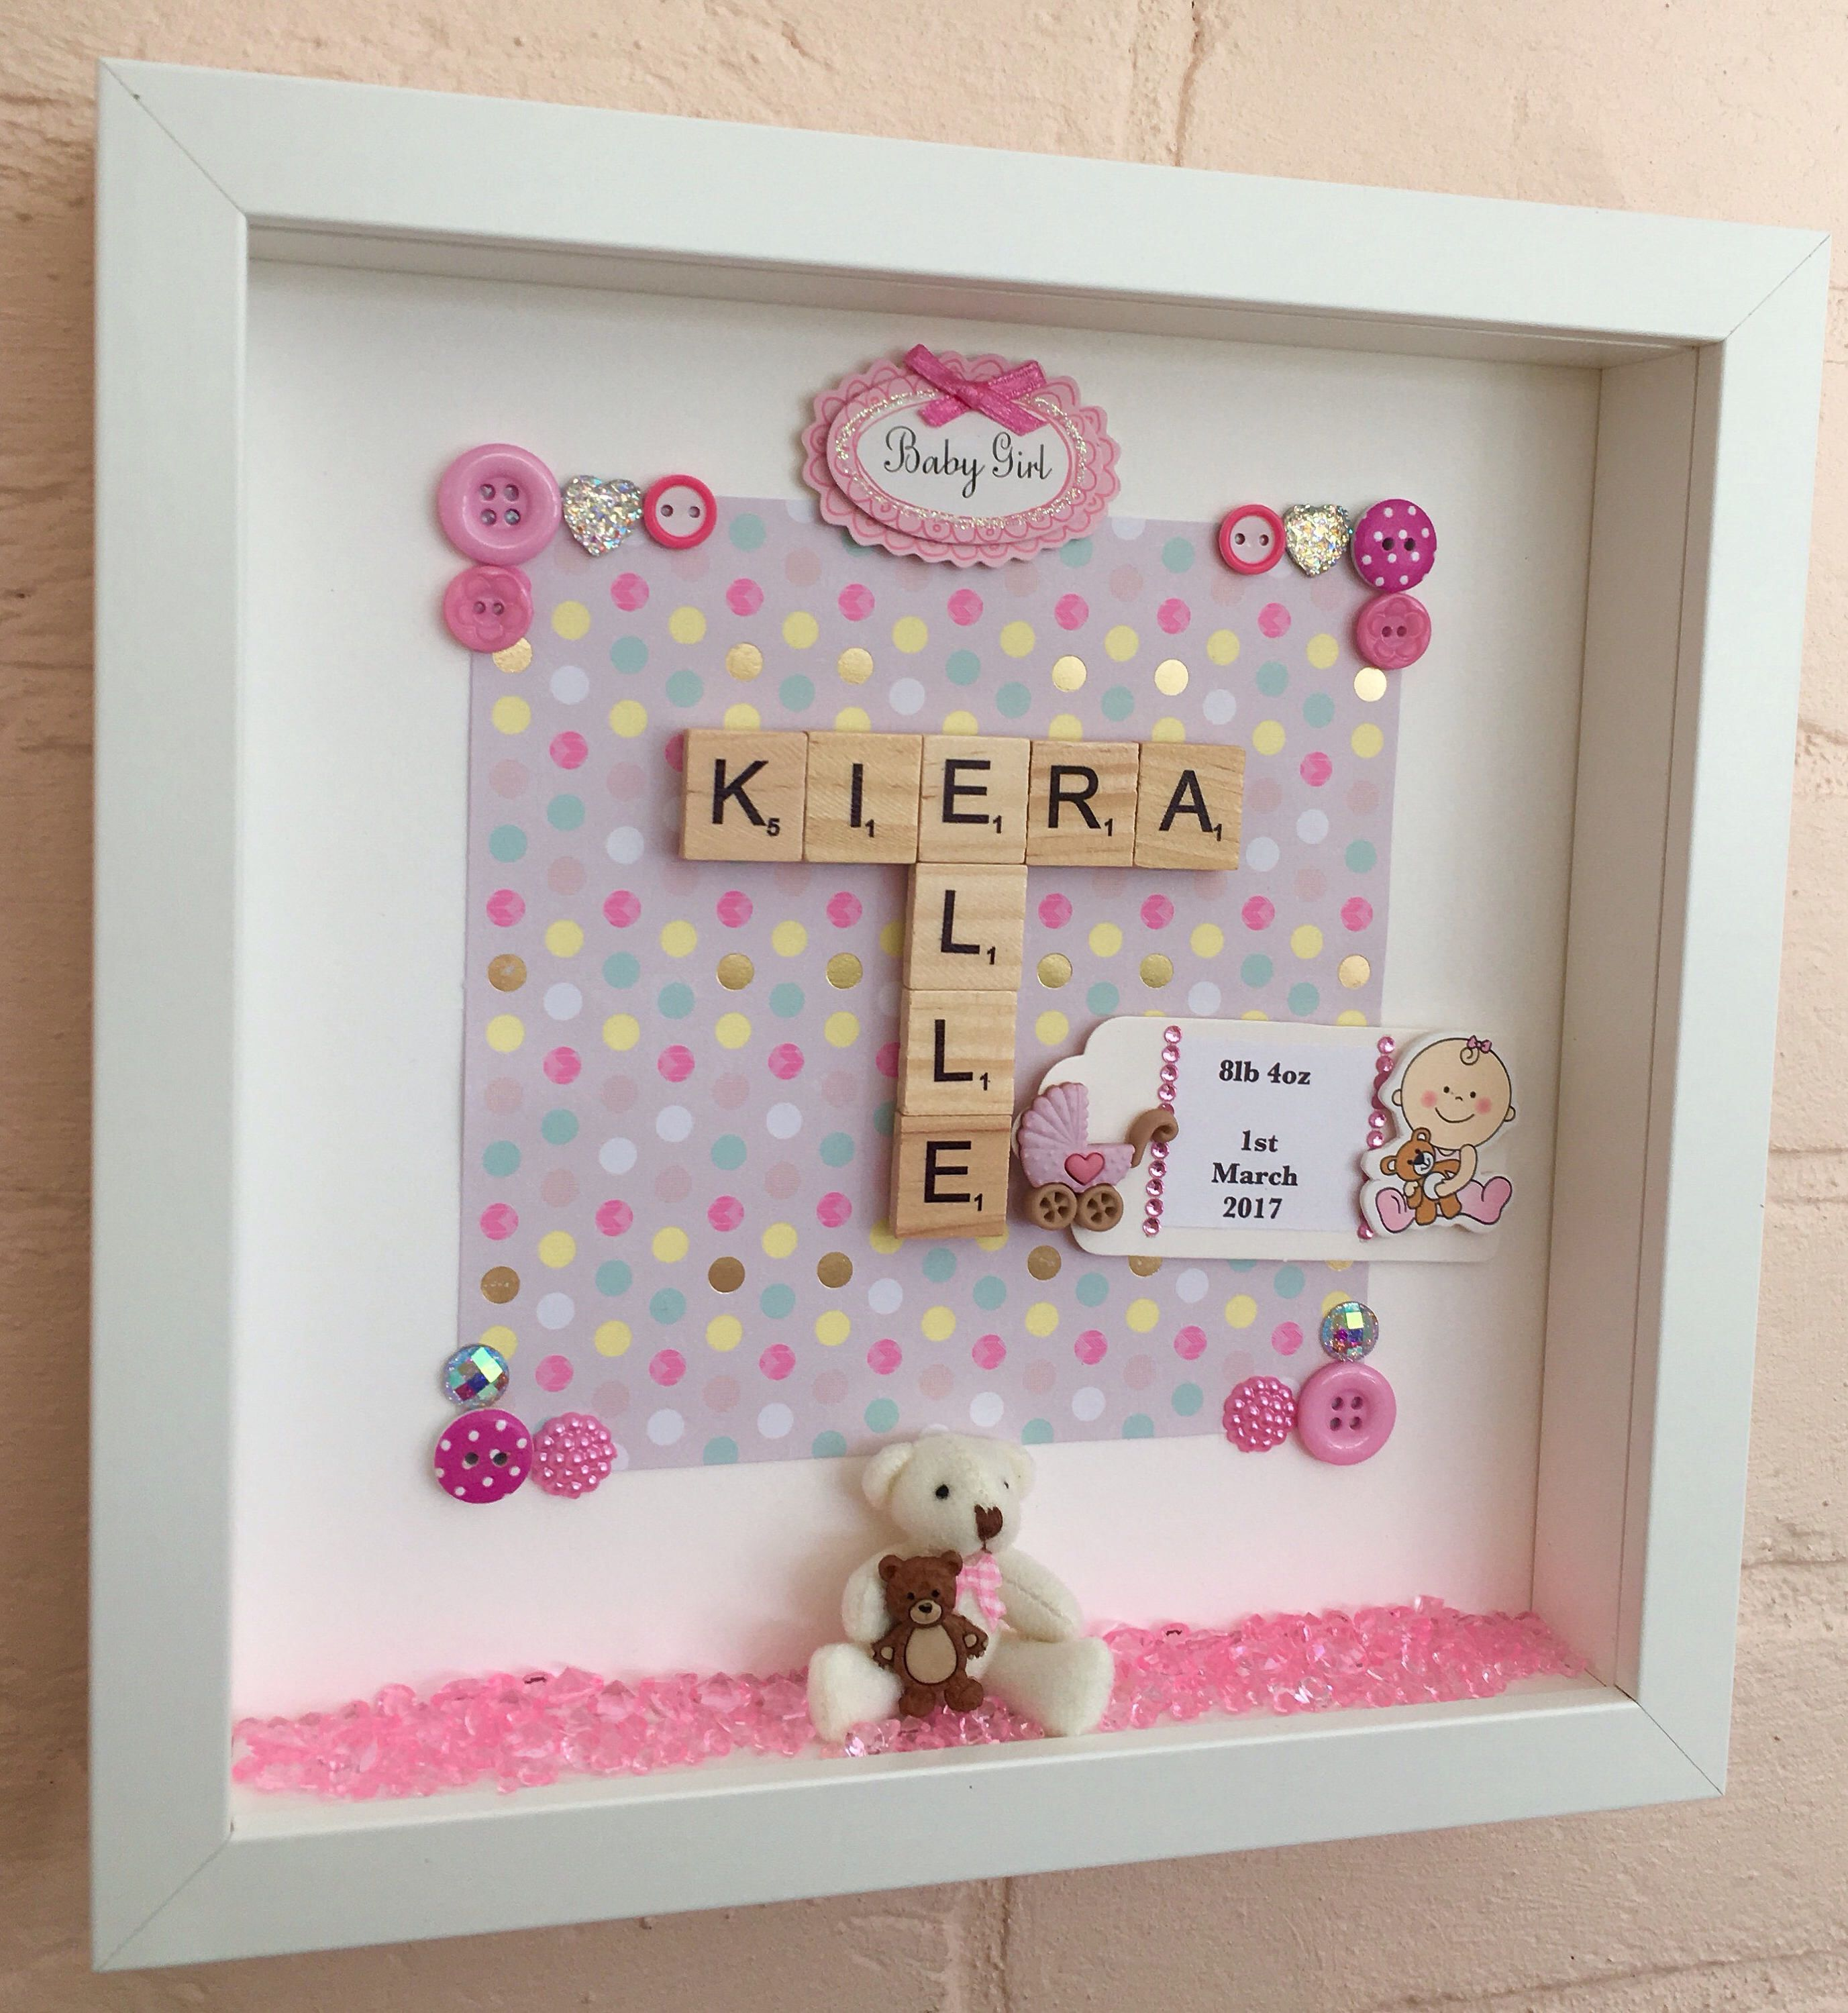 New baby gift personalised baby gift baby girl gift baby new baby gift baby girl gift baby name frame baby teddy bear frame negle Image collections